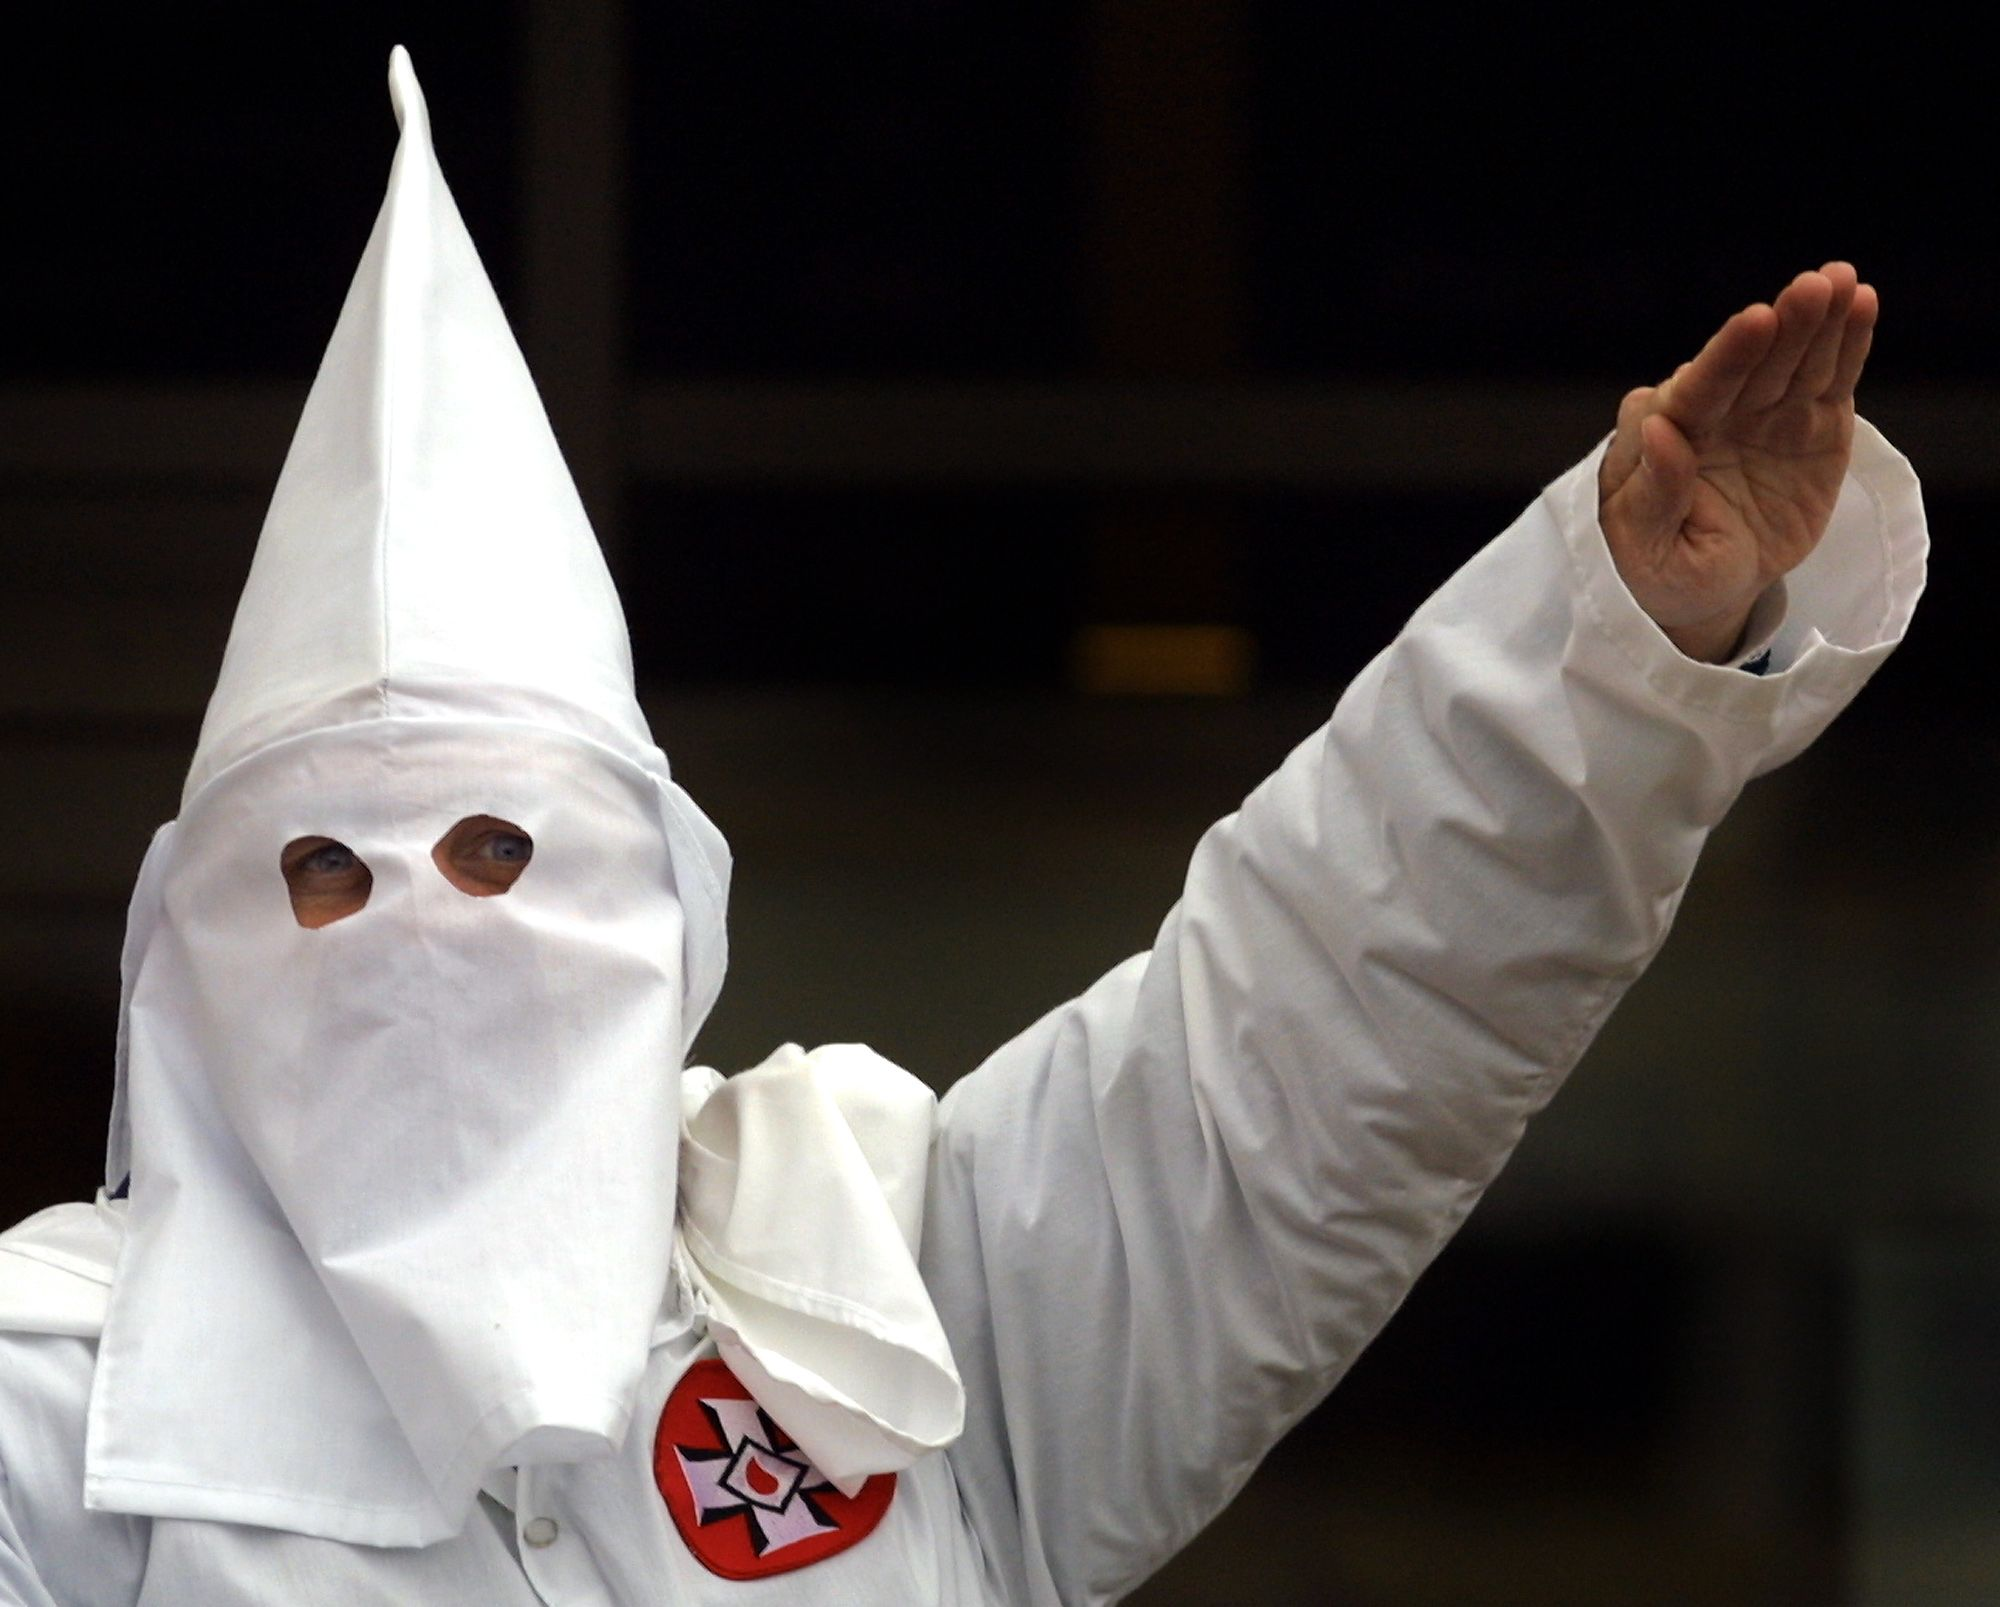 KKK Iowa Students Spark Backlash After Wearing Hoods And